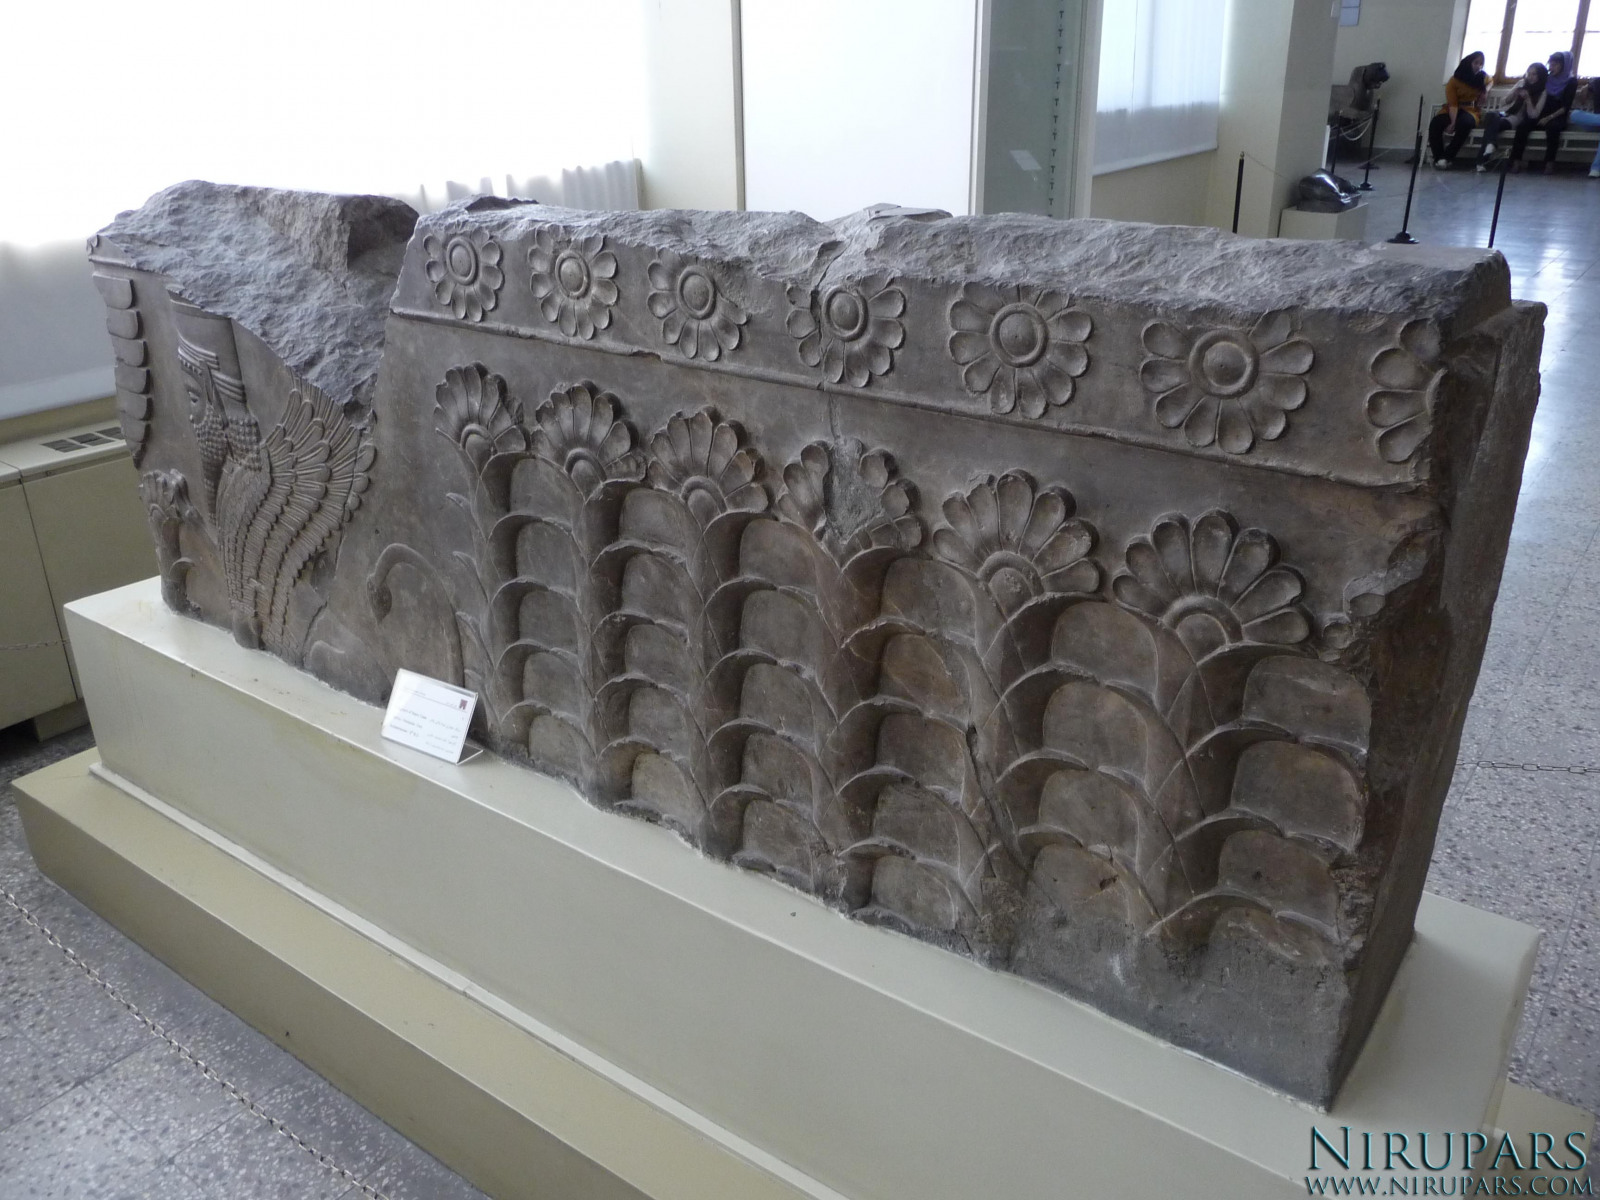 National Museum of Iran - Stairs Fragment - Tachara Palace